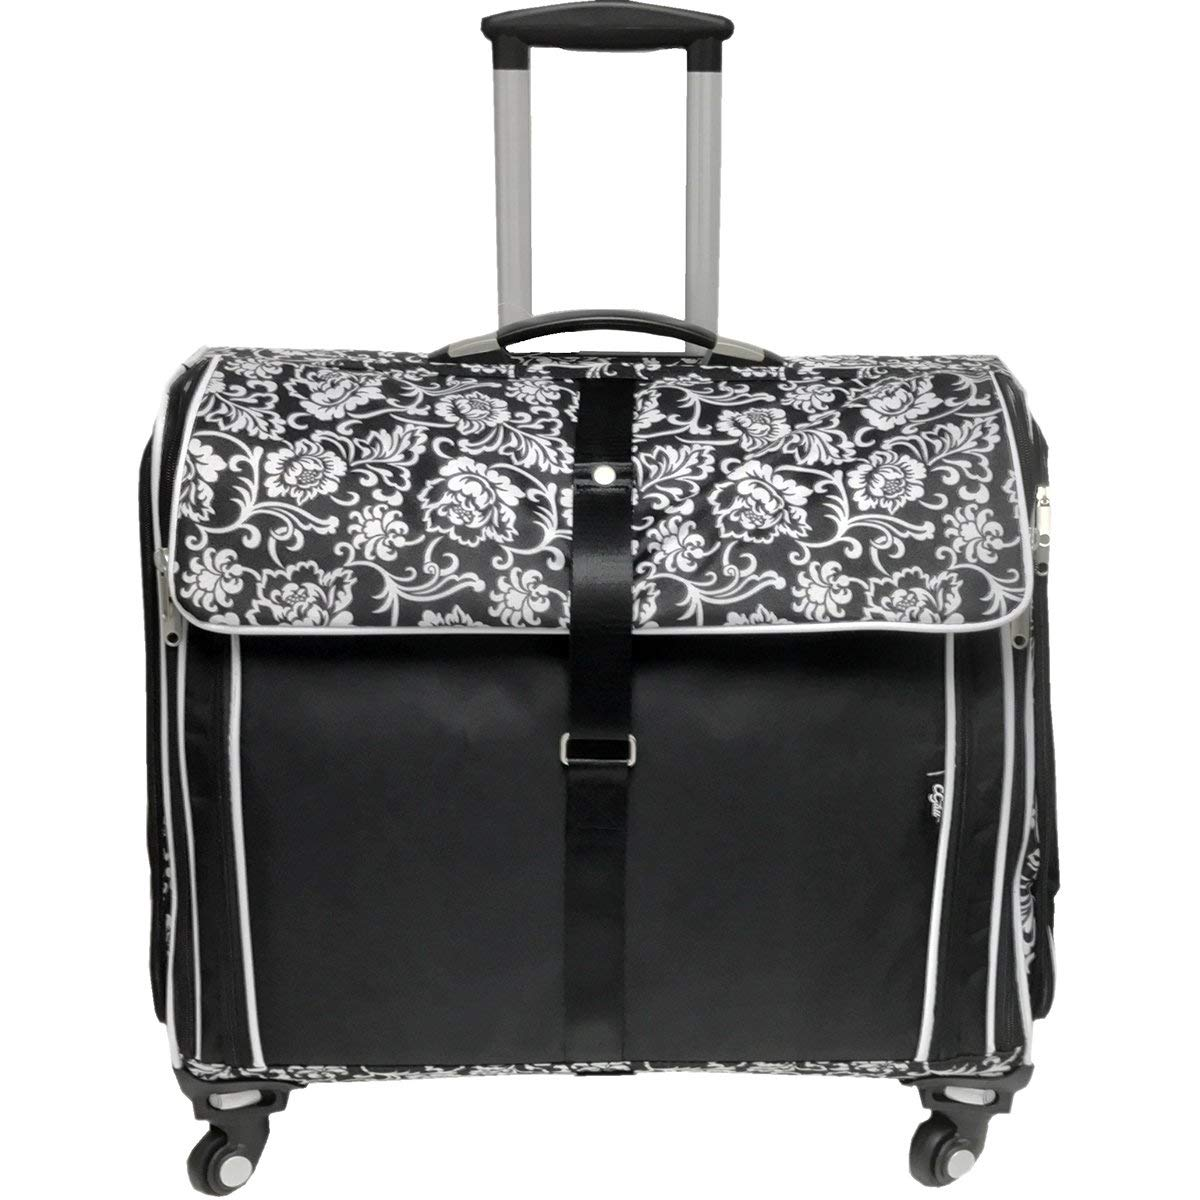 Cgull Ultimate Craft Machine & Supplies Trolley Canvas Tote-Black With White Damask Florals 381433